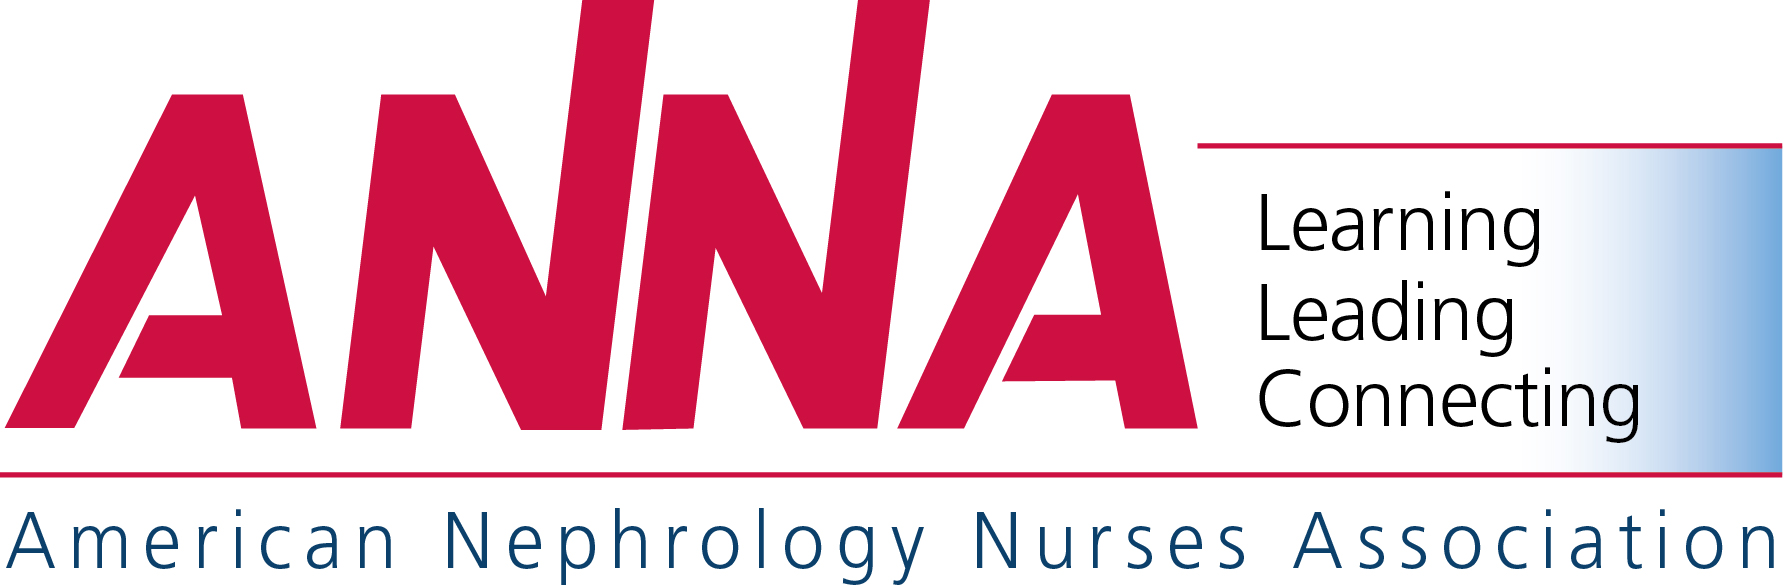 American Nephrology Nurses Association